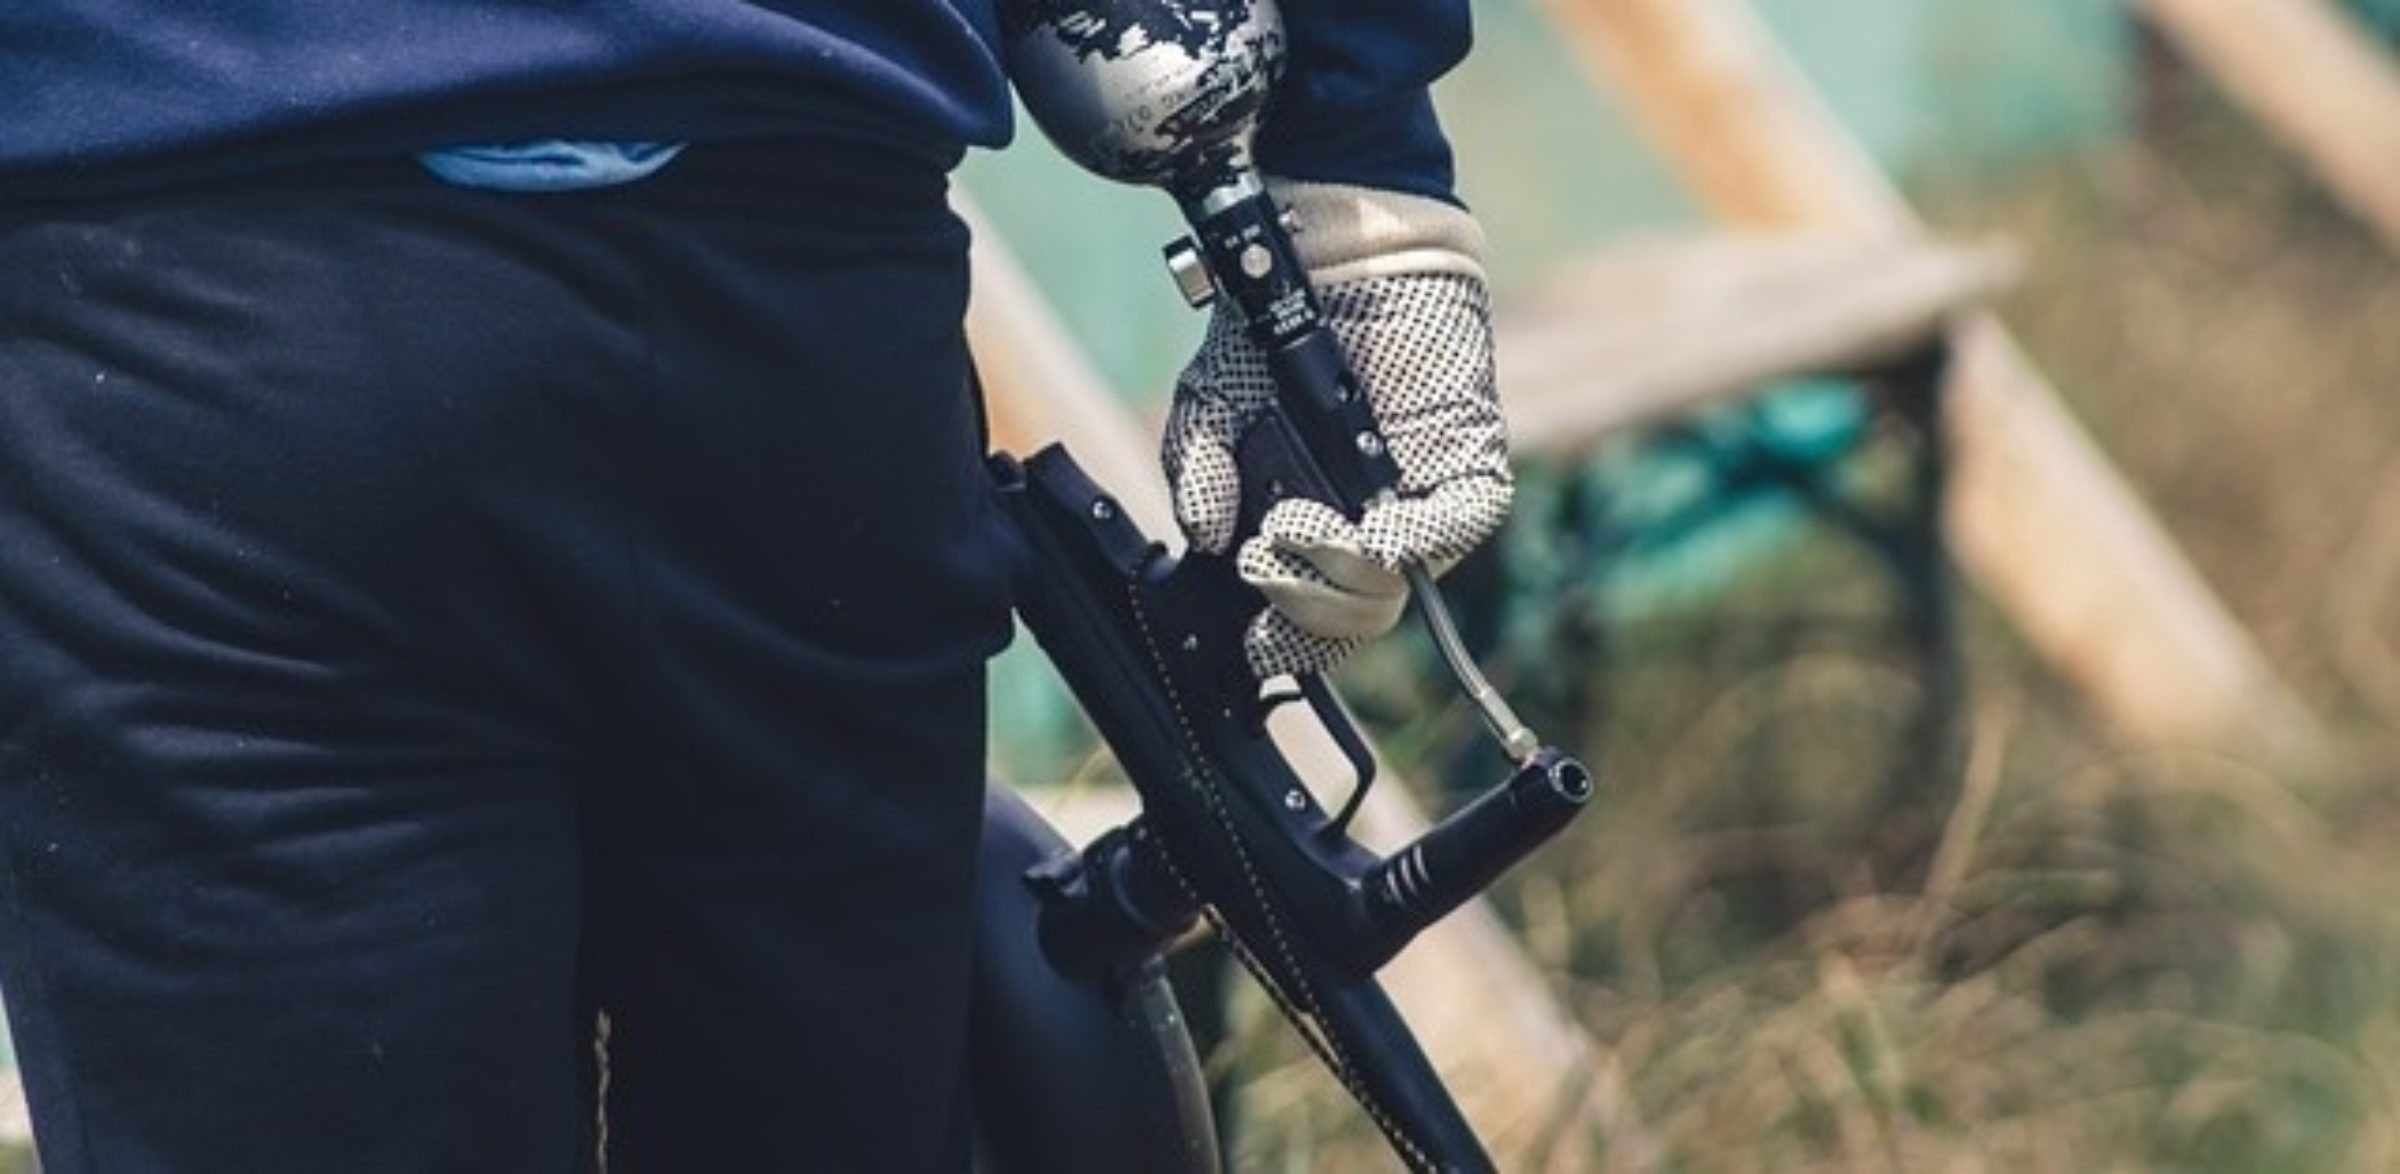 Paintball 3659100 640 3509 1569233666 35hxogji8j